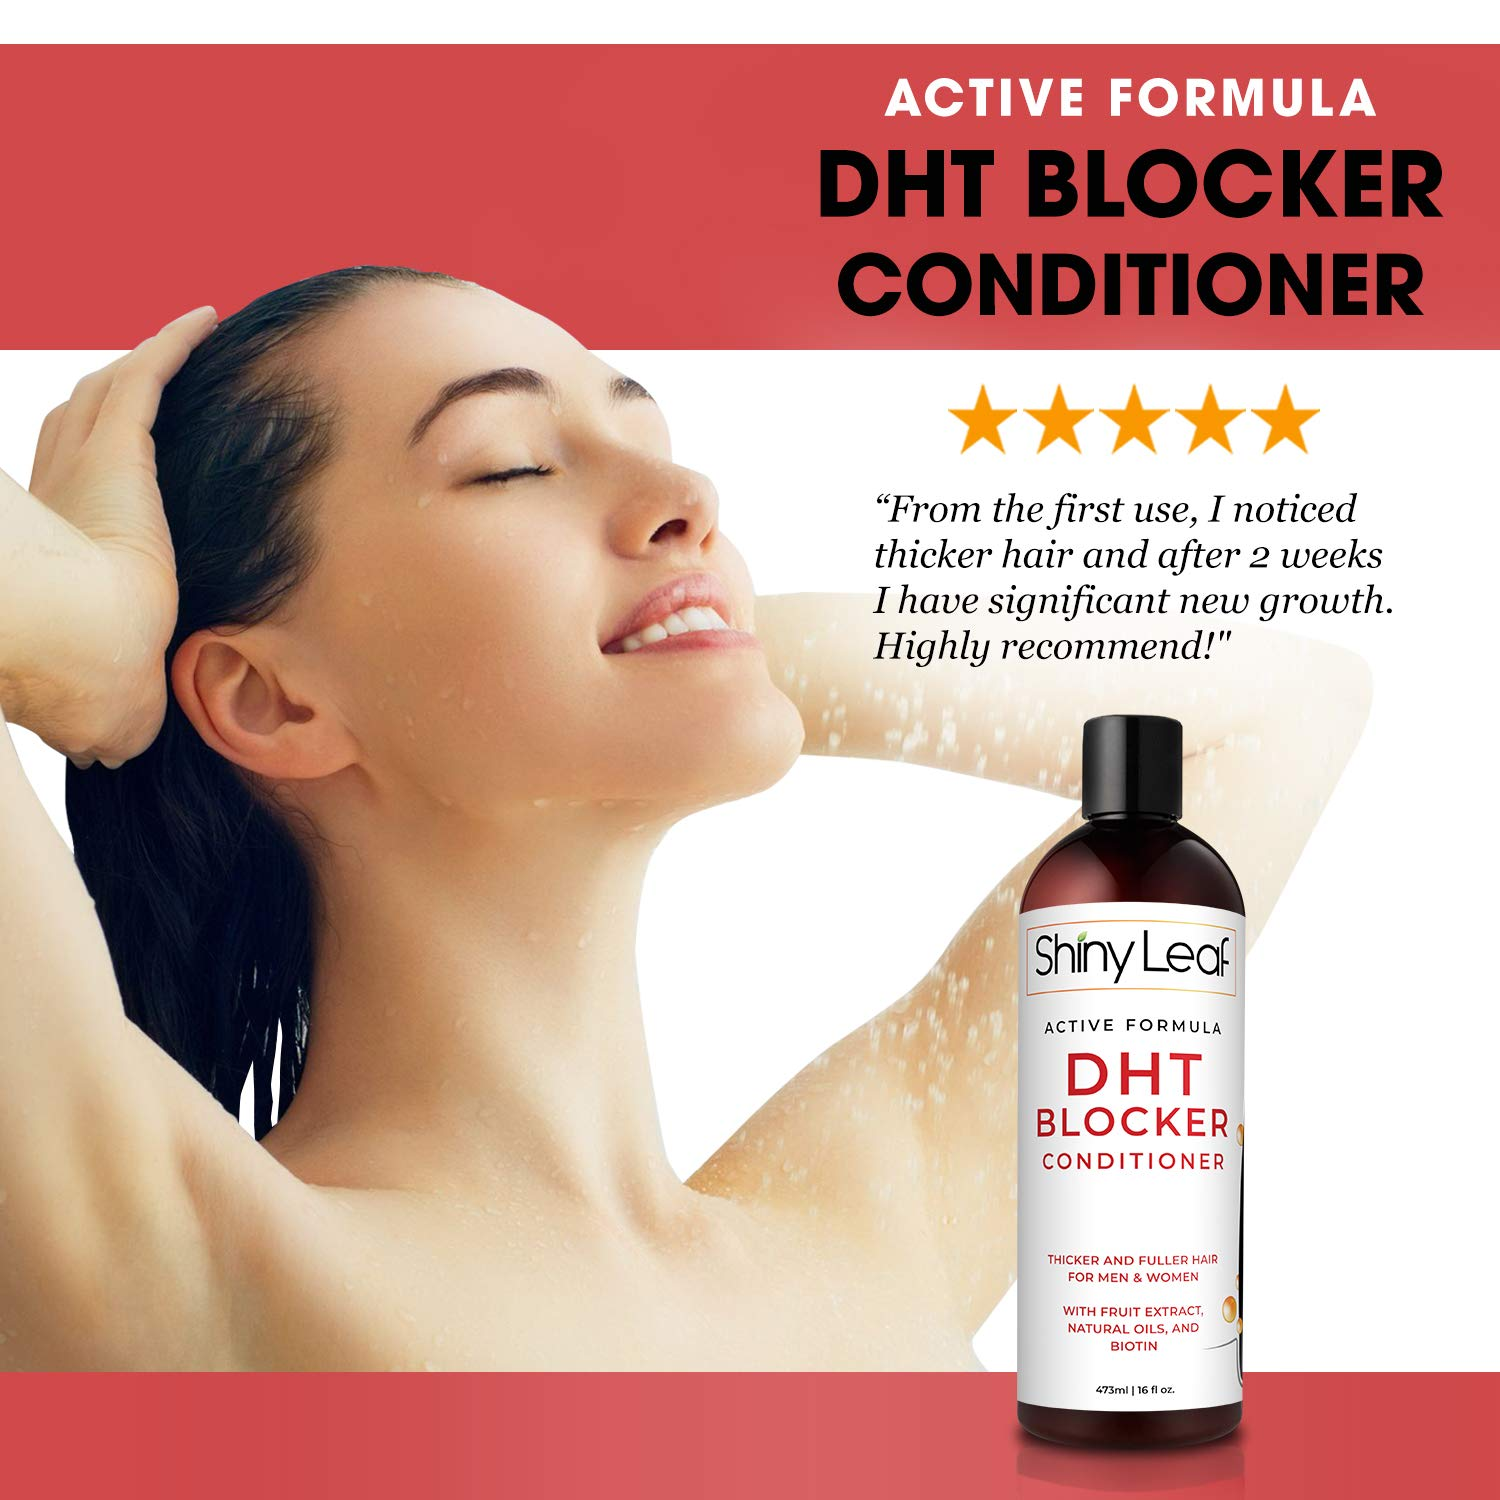 DHT Blocker Conditioner for Hair Loss with Rosemary and Green Tea Extracts, Anti-Hair Loss Conditioner for Hair Growth for Men & Women, For Softer & Smoother Hair, Paraben & Sulfate Free, 16 oz by Shiny Leaf (Image #4)